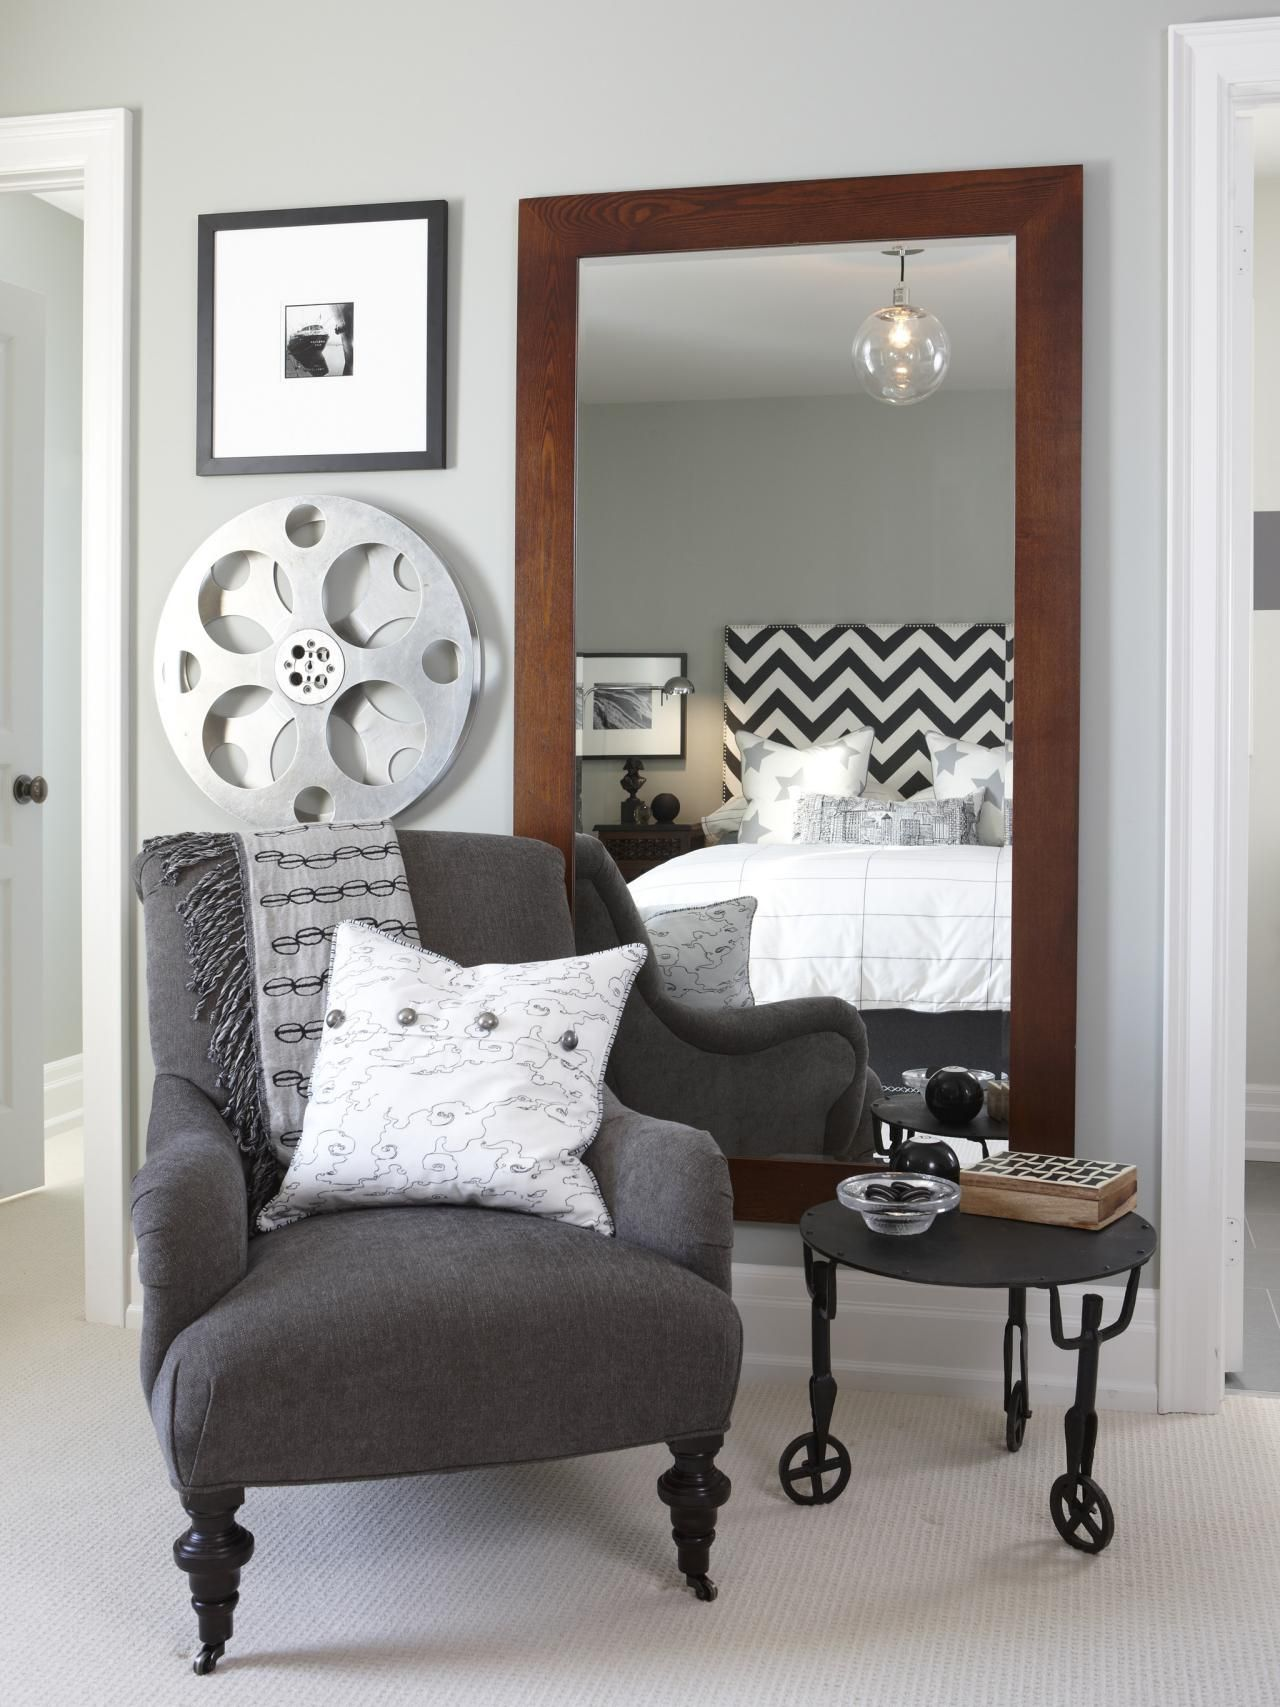 Stylish ways to decorate with mirrors in the bedroom house ideas